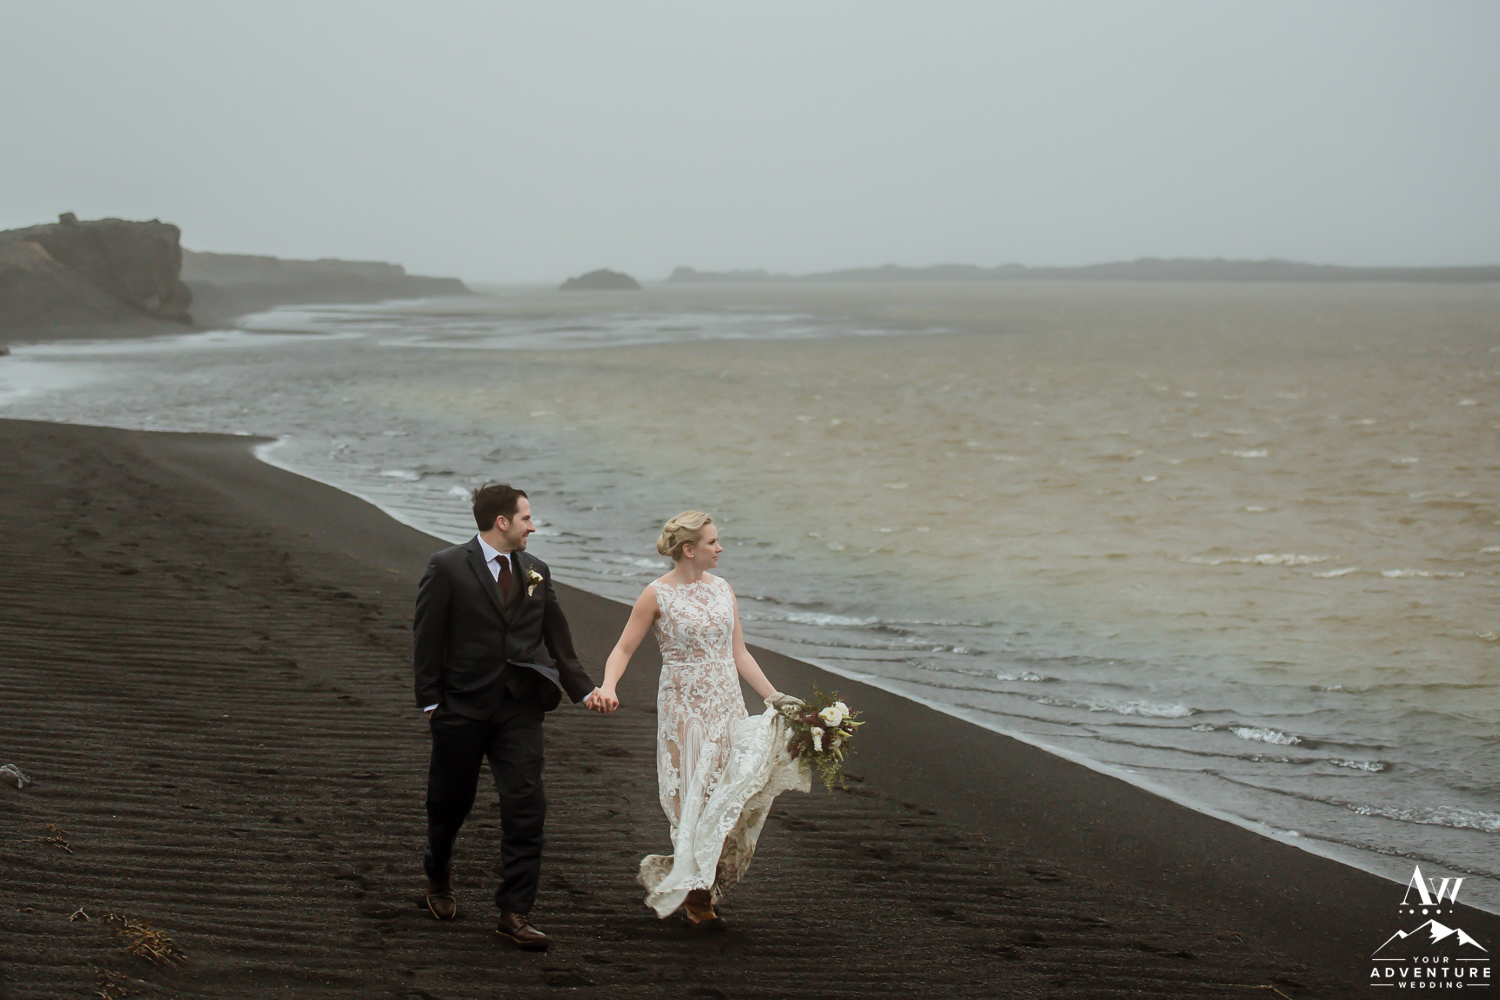 Couple walking on black sand beach